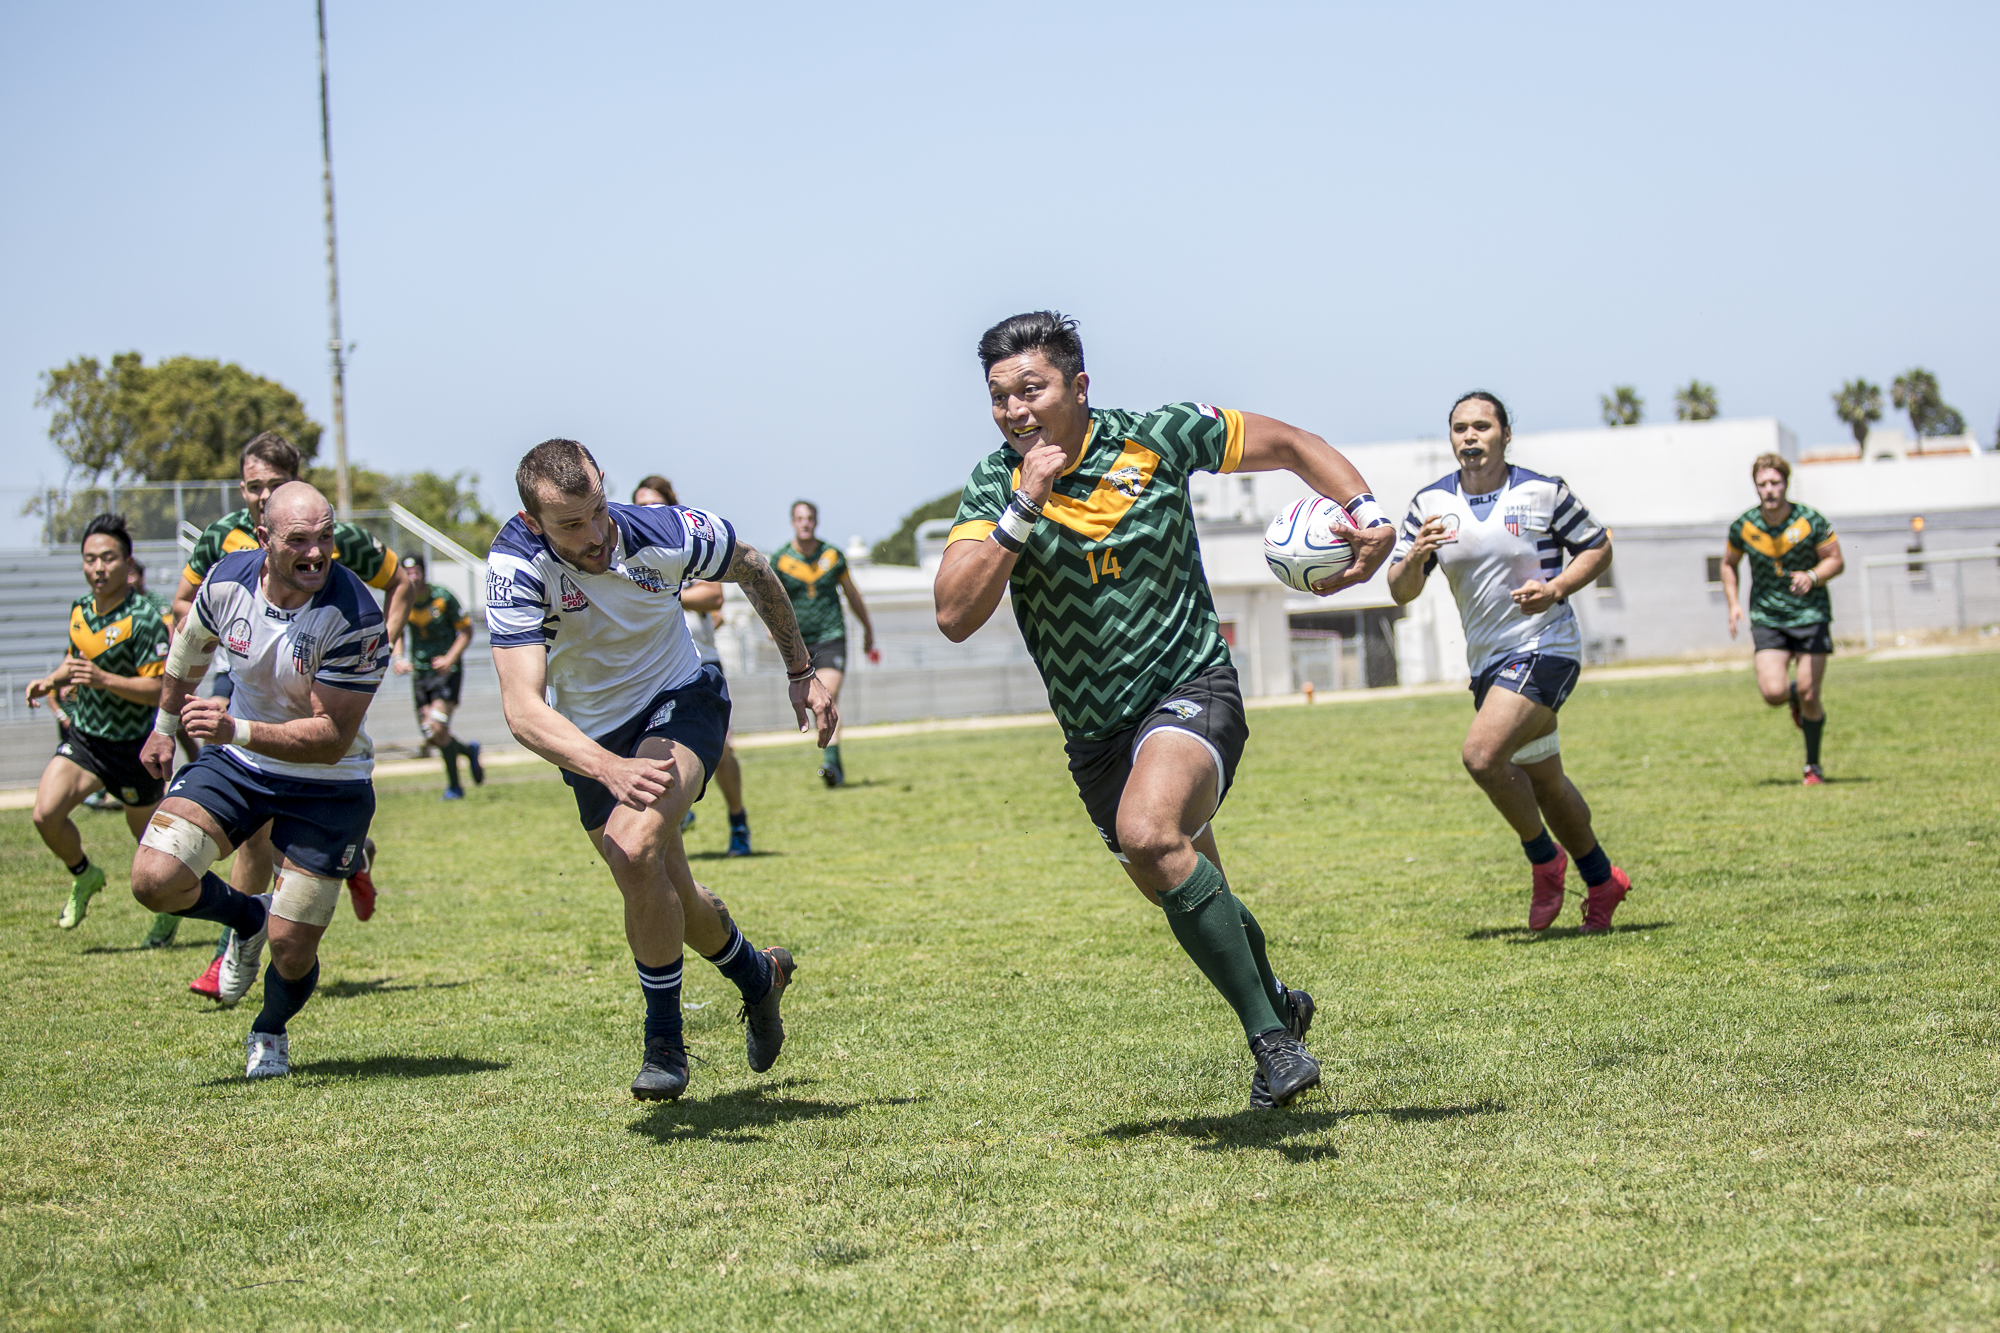 Santa Monica Dolphin rugby forward Joey Krassenstein (#14, green)  charges down the field during the 1st half of the game, which was held at Westchester High School in Westchester California on Saturday April 28 2018. The Santa Monica Dolphins would go on to lose the game 7-26 during Saturday's game. (Matthew Martin/Corsair Photo)